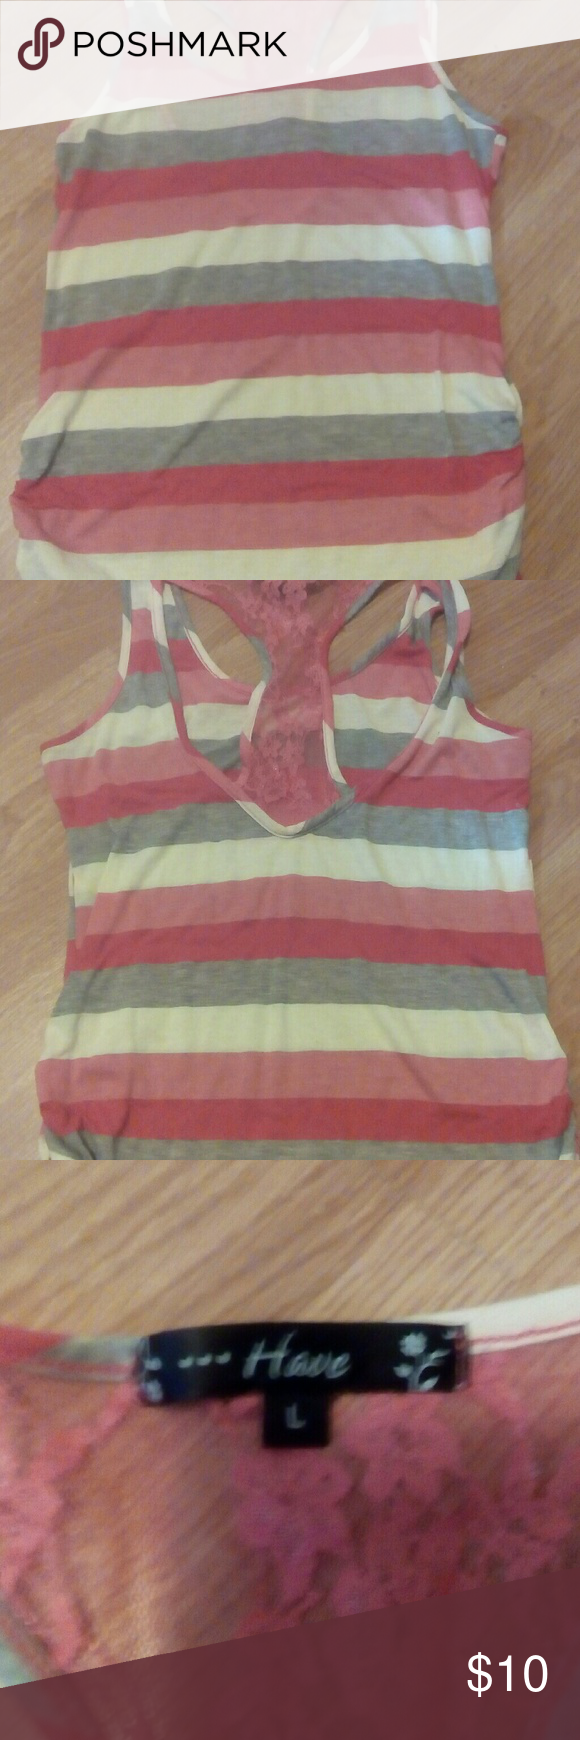 Nwot Tank top size L Great to have. The colors are a little brighter than the picture shows Tops